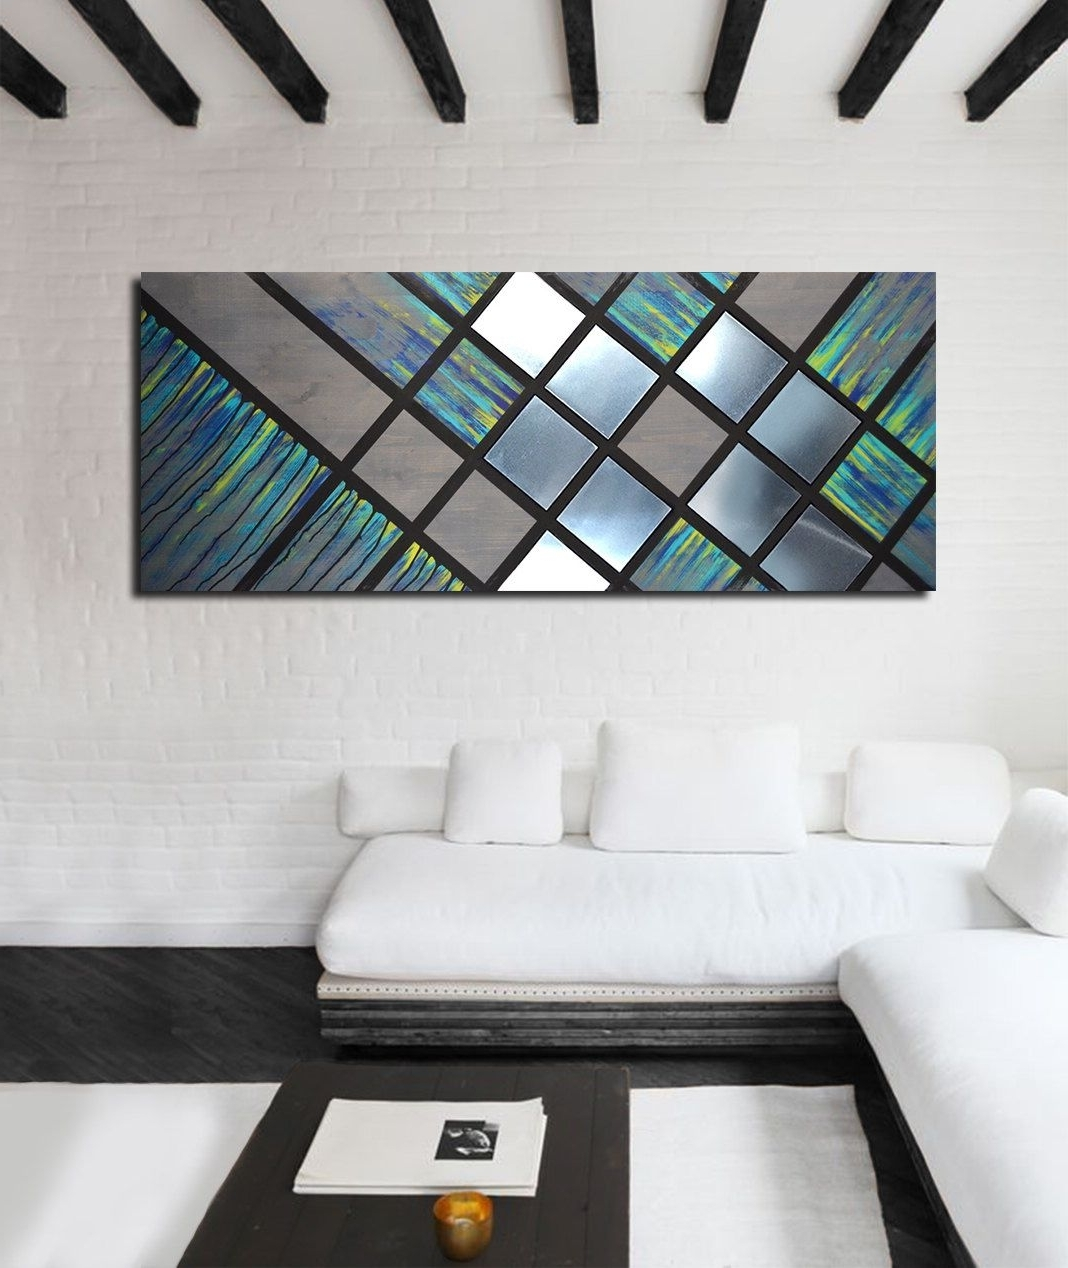 Metal Art Wall Decor, Wood Wall Art Decor, Modern Abstract Wall Art Within Best And Newest Large Contemporary Wall Art (View 12 of 15)